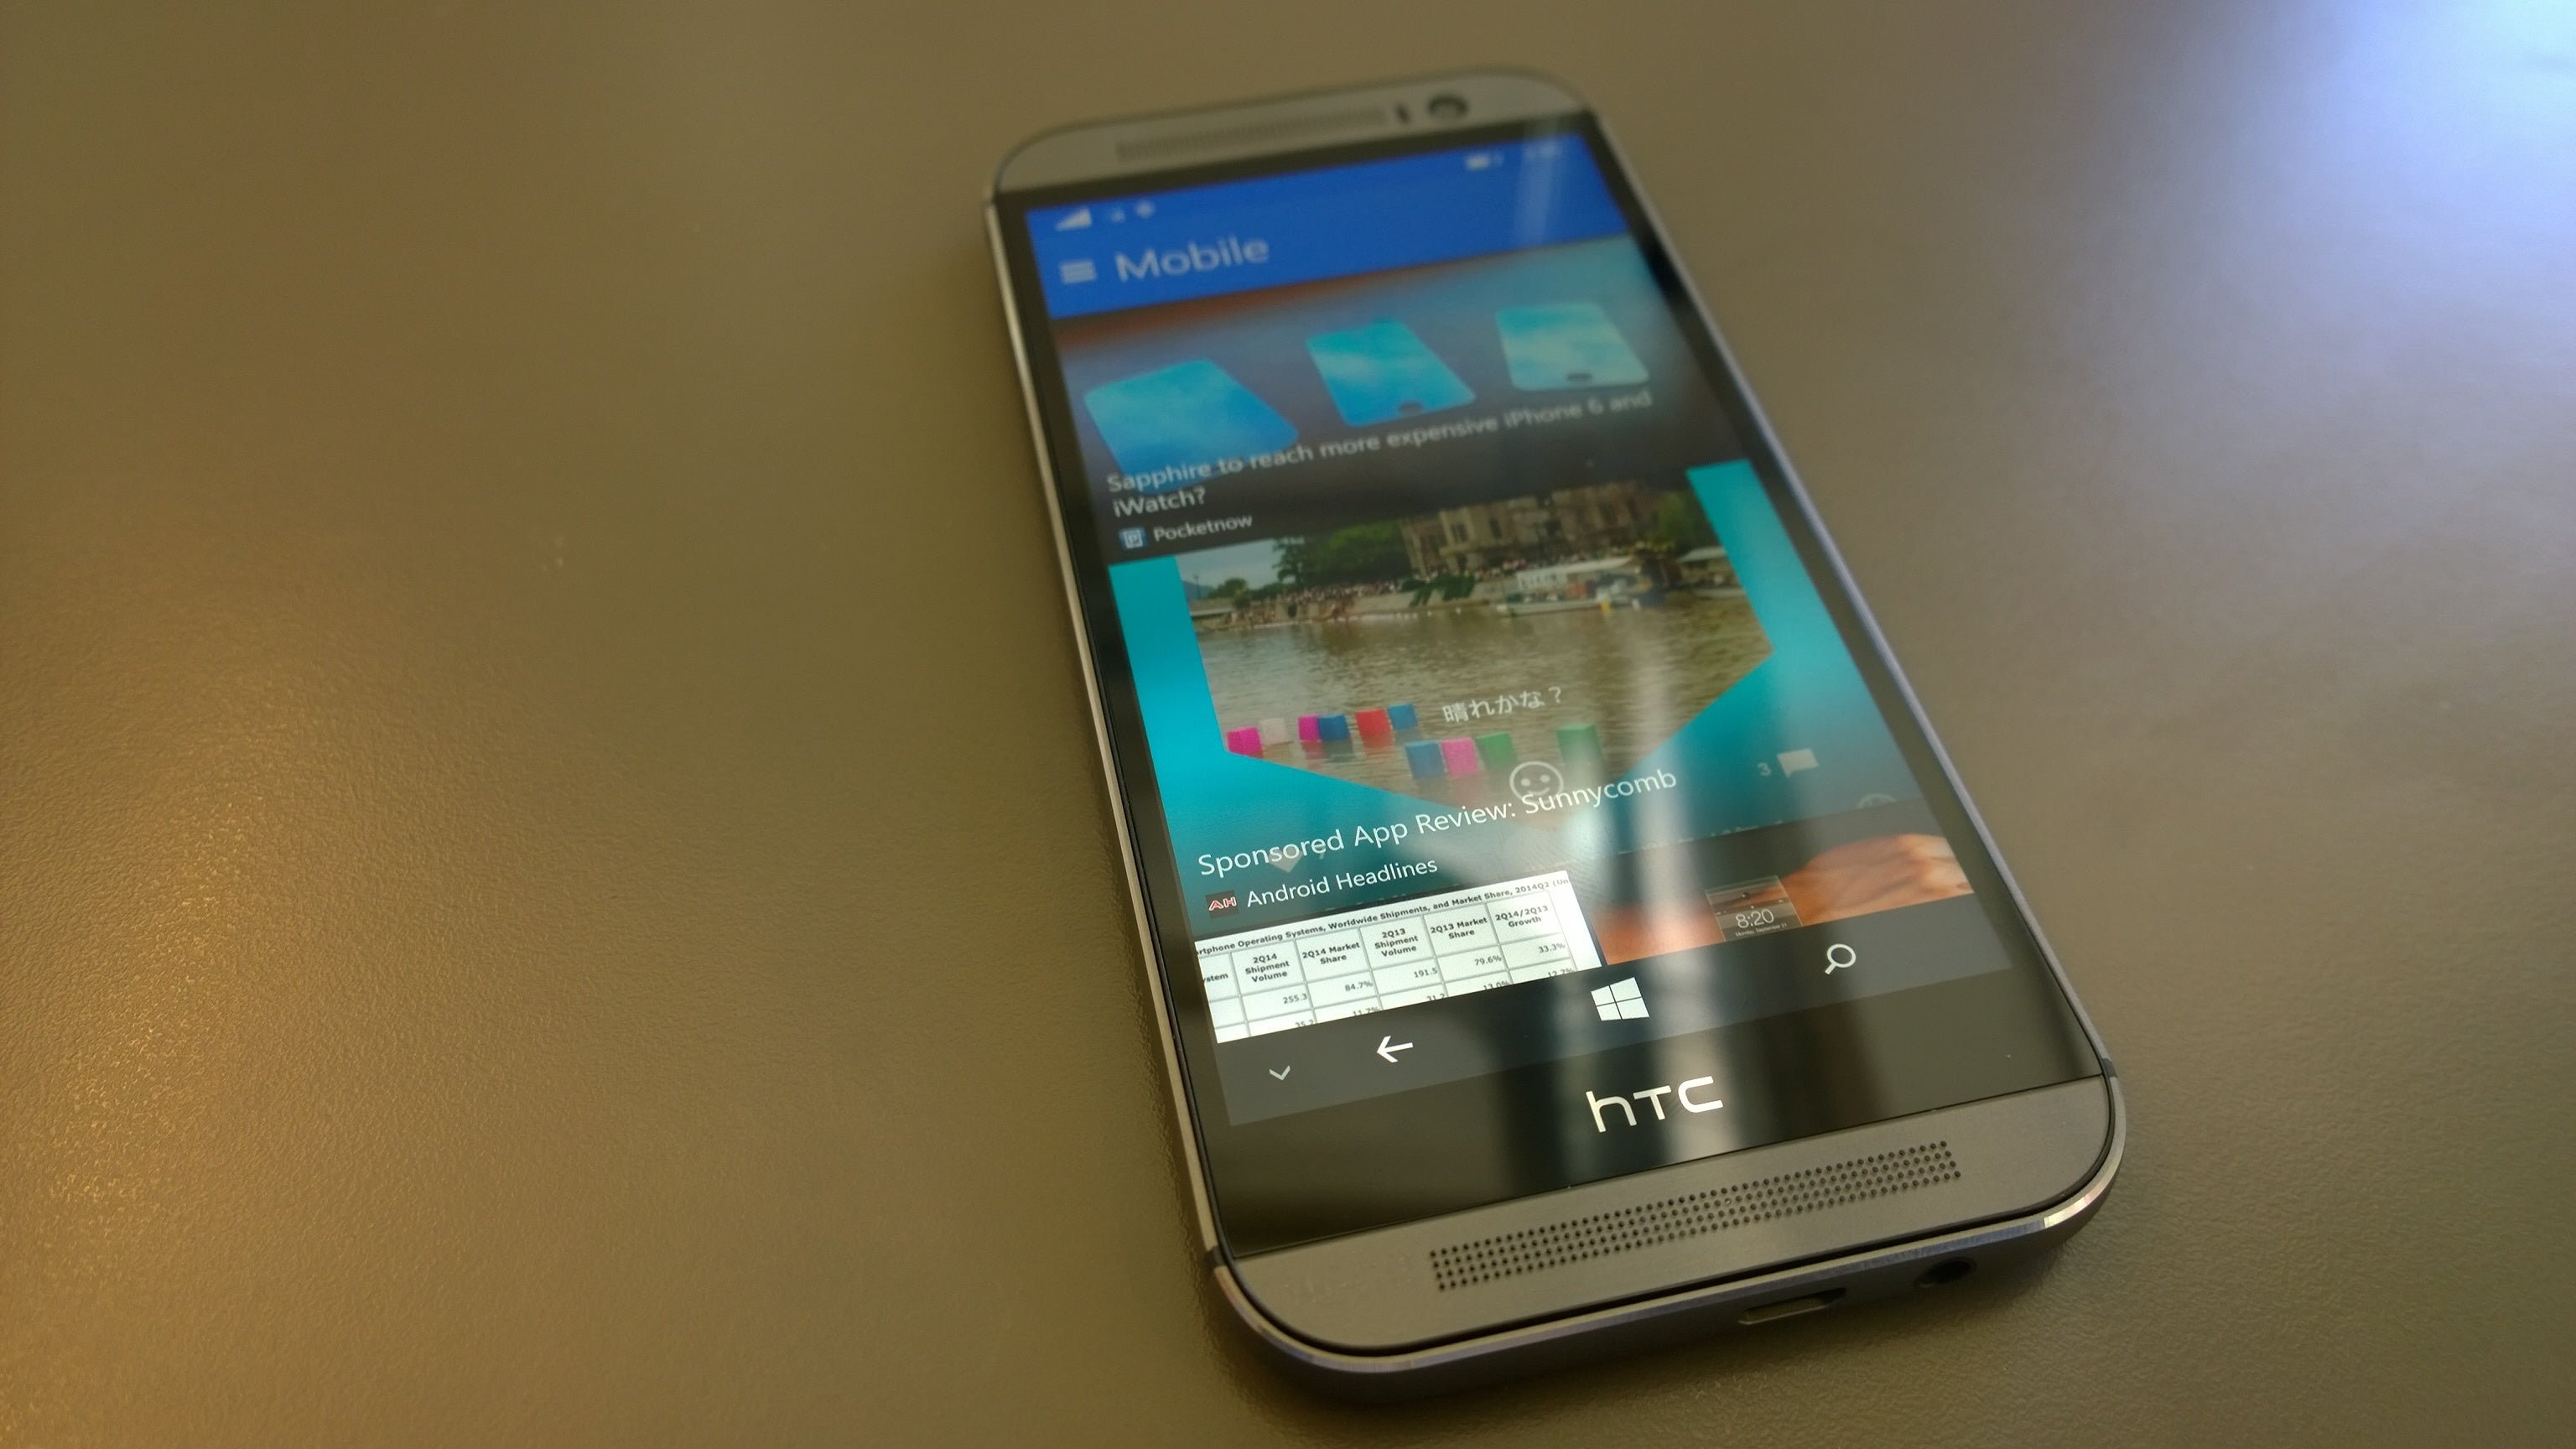 HTC One (M8) for Windows review: a novel new take on Windows